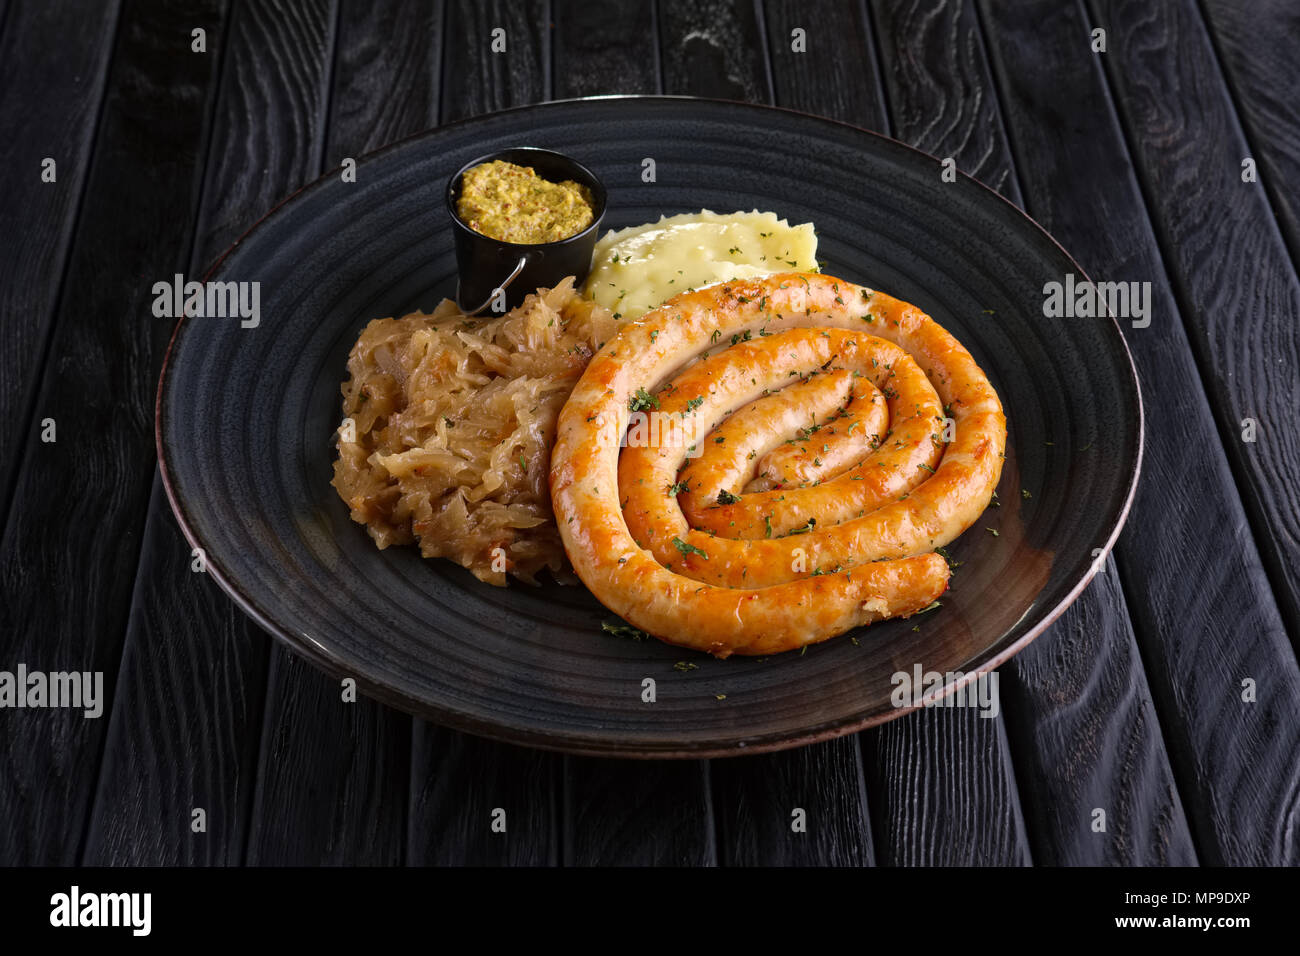 Homemade sausage with braised cabbage and mashed potato Stock Photo